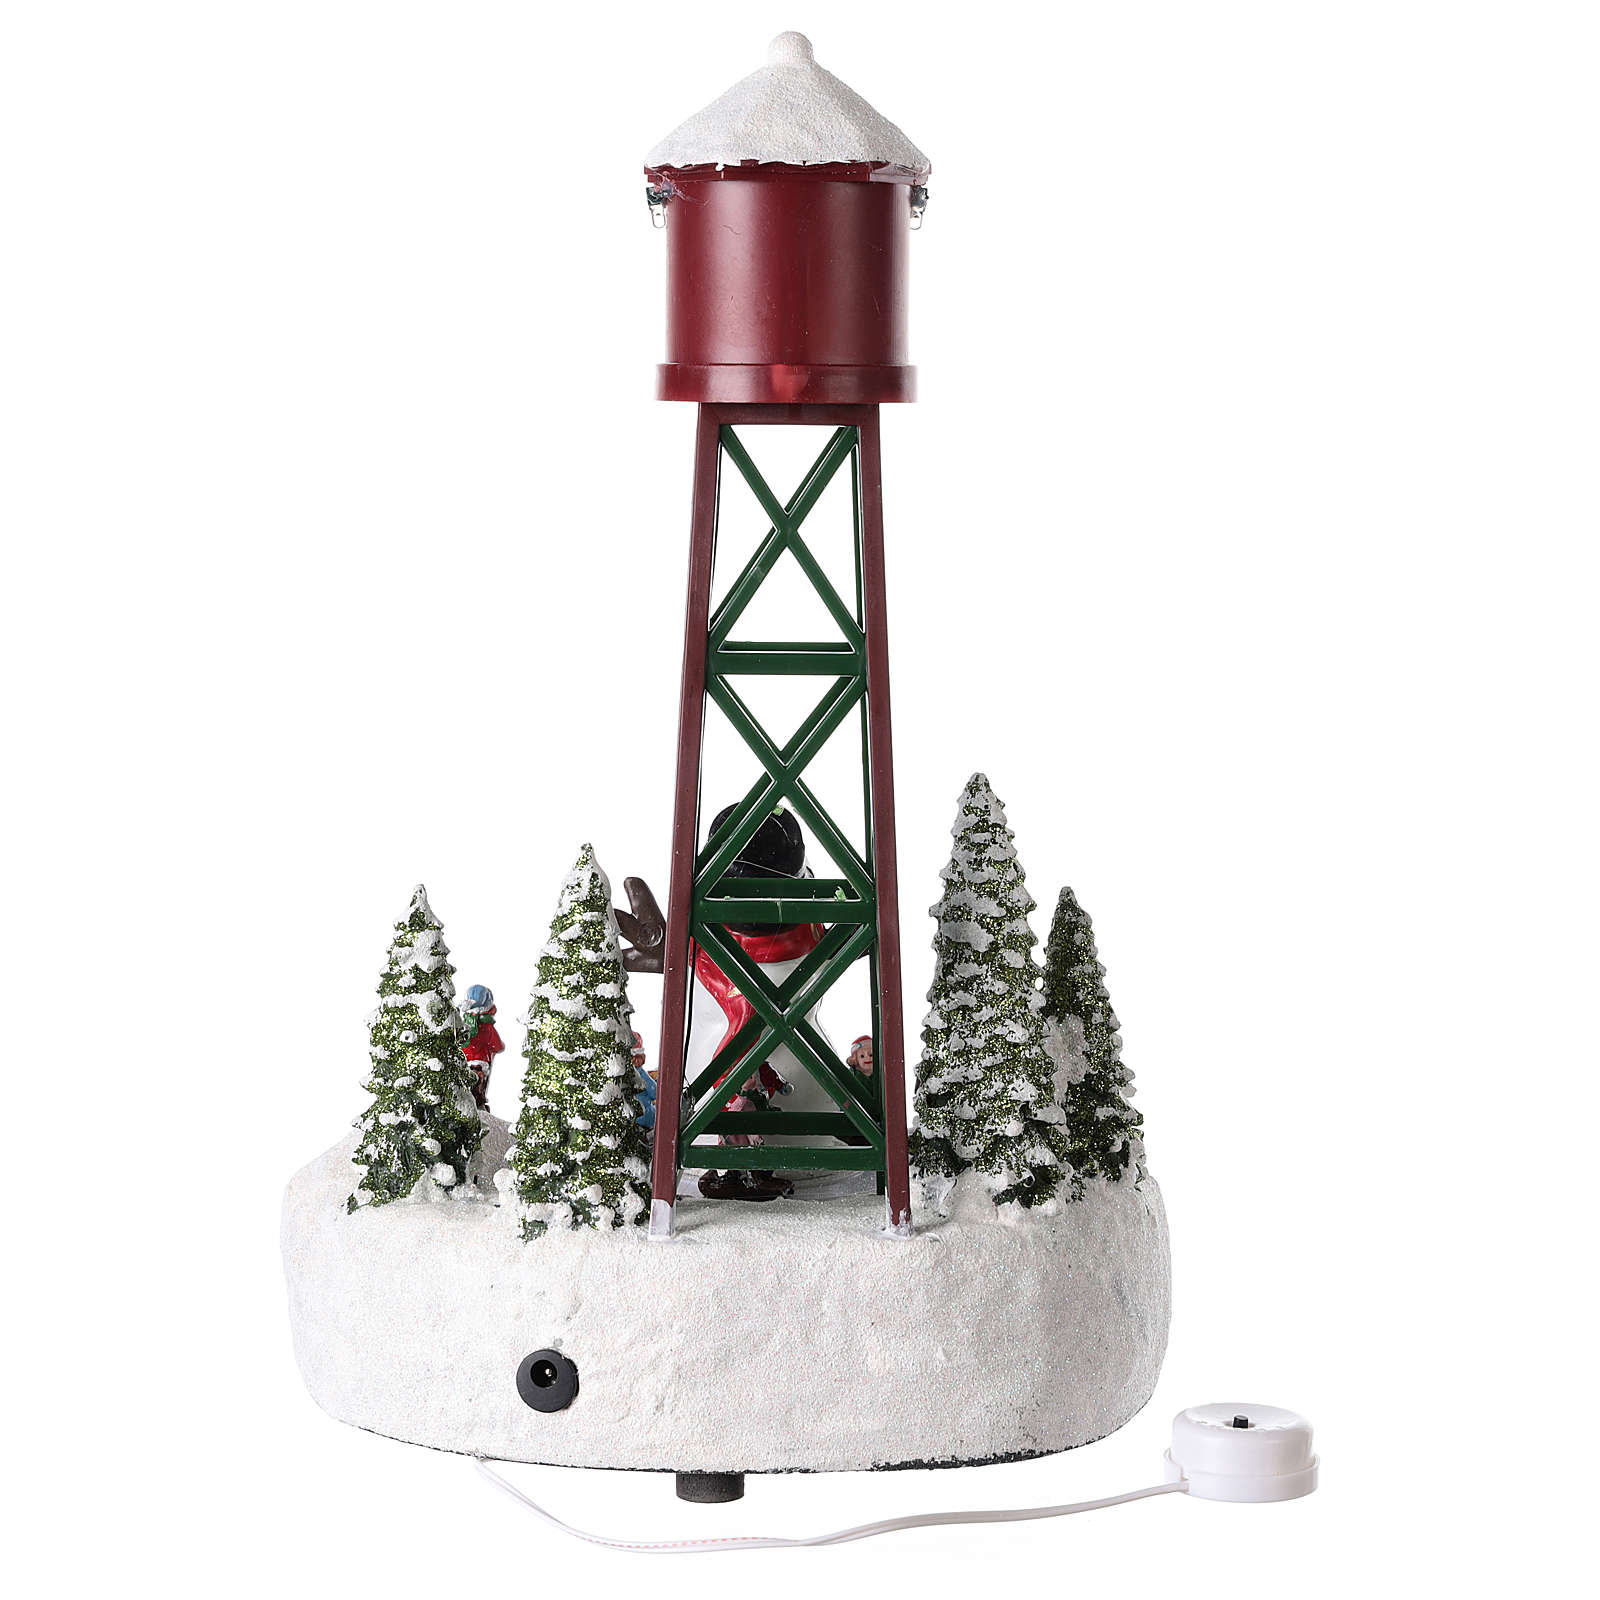 Water tower for Christmas village with snowman 35x20 cm 3